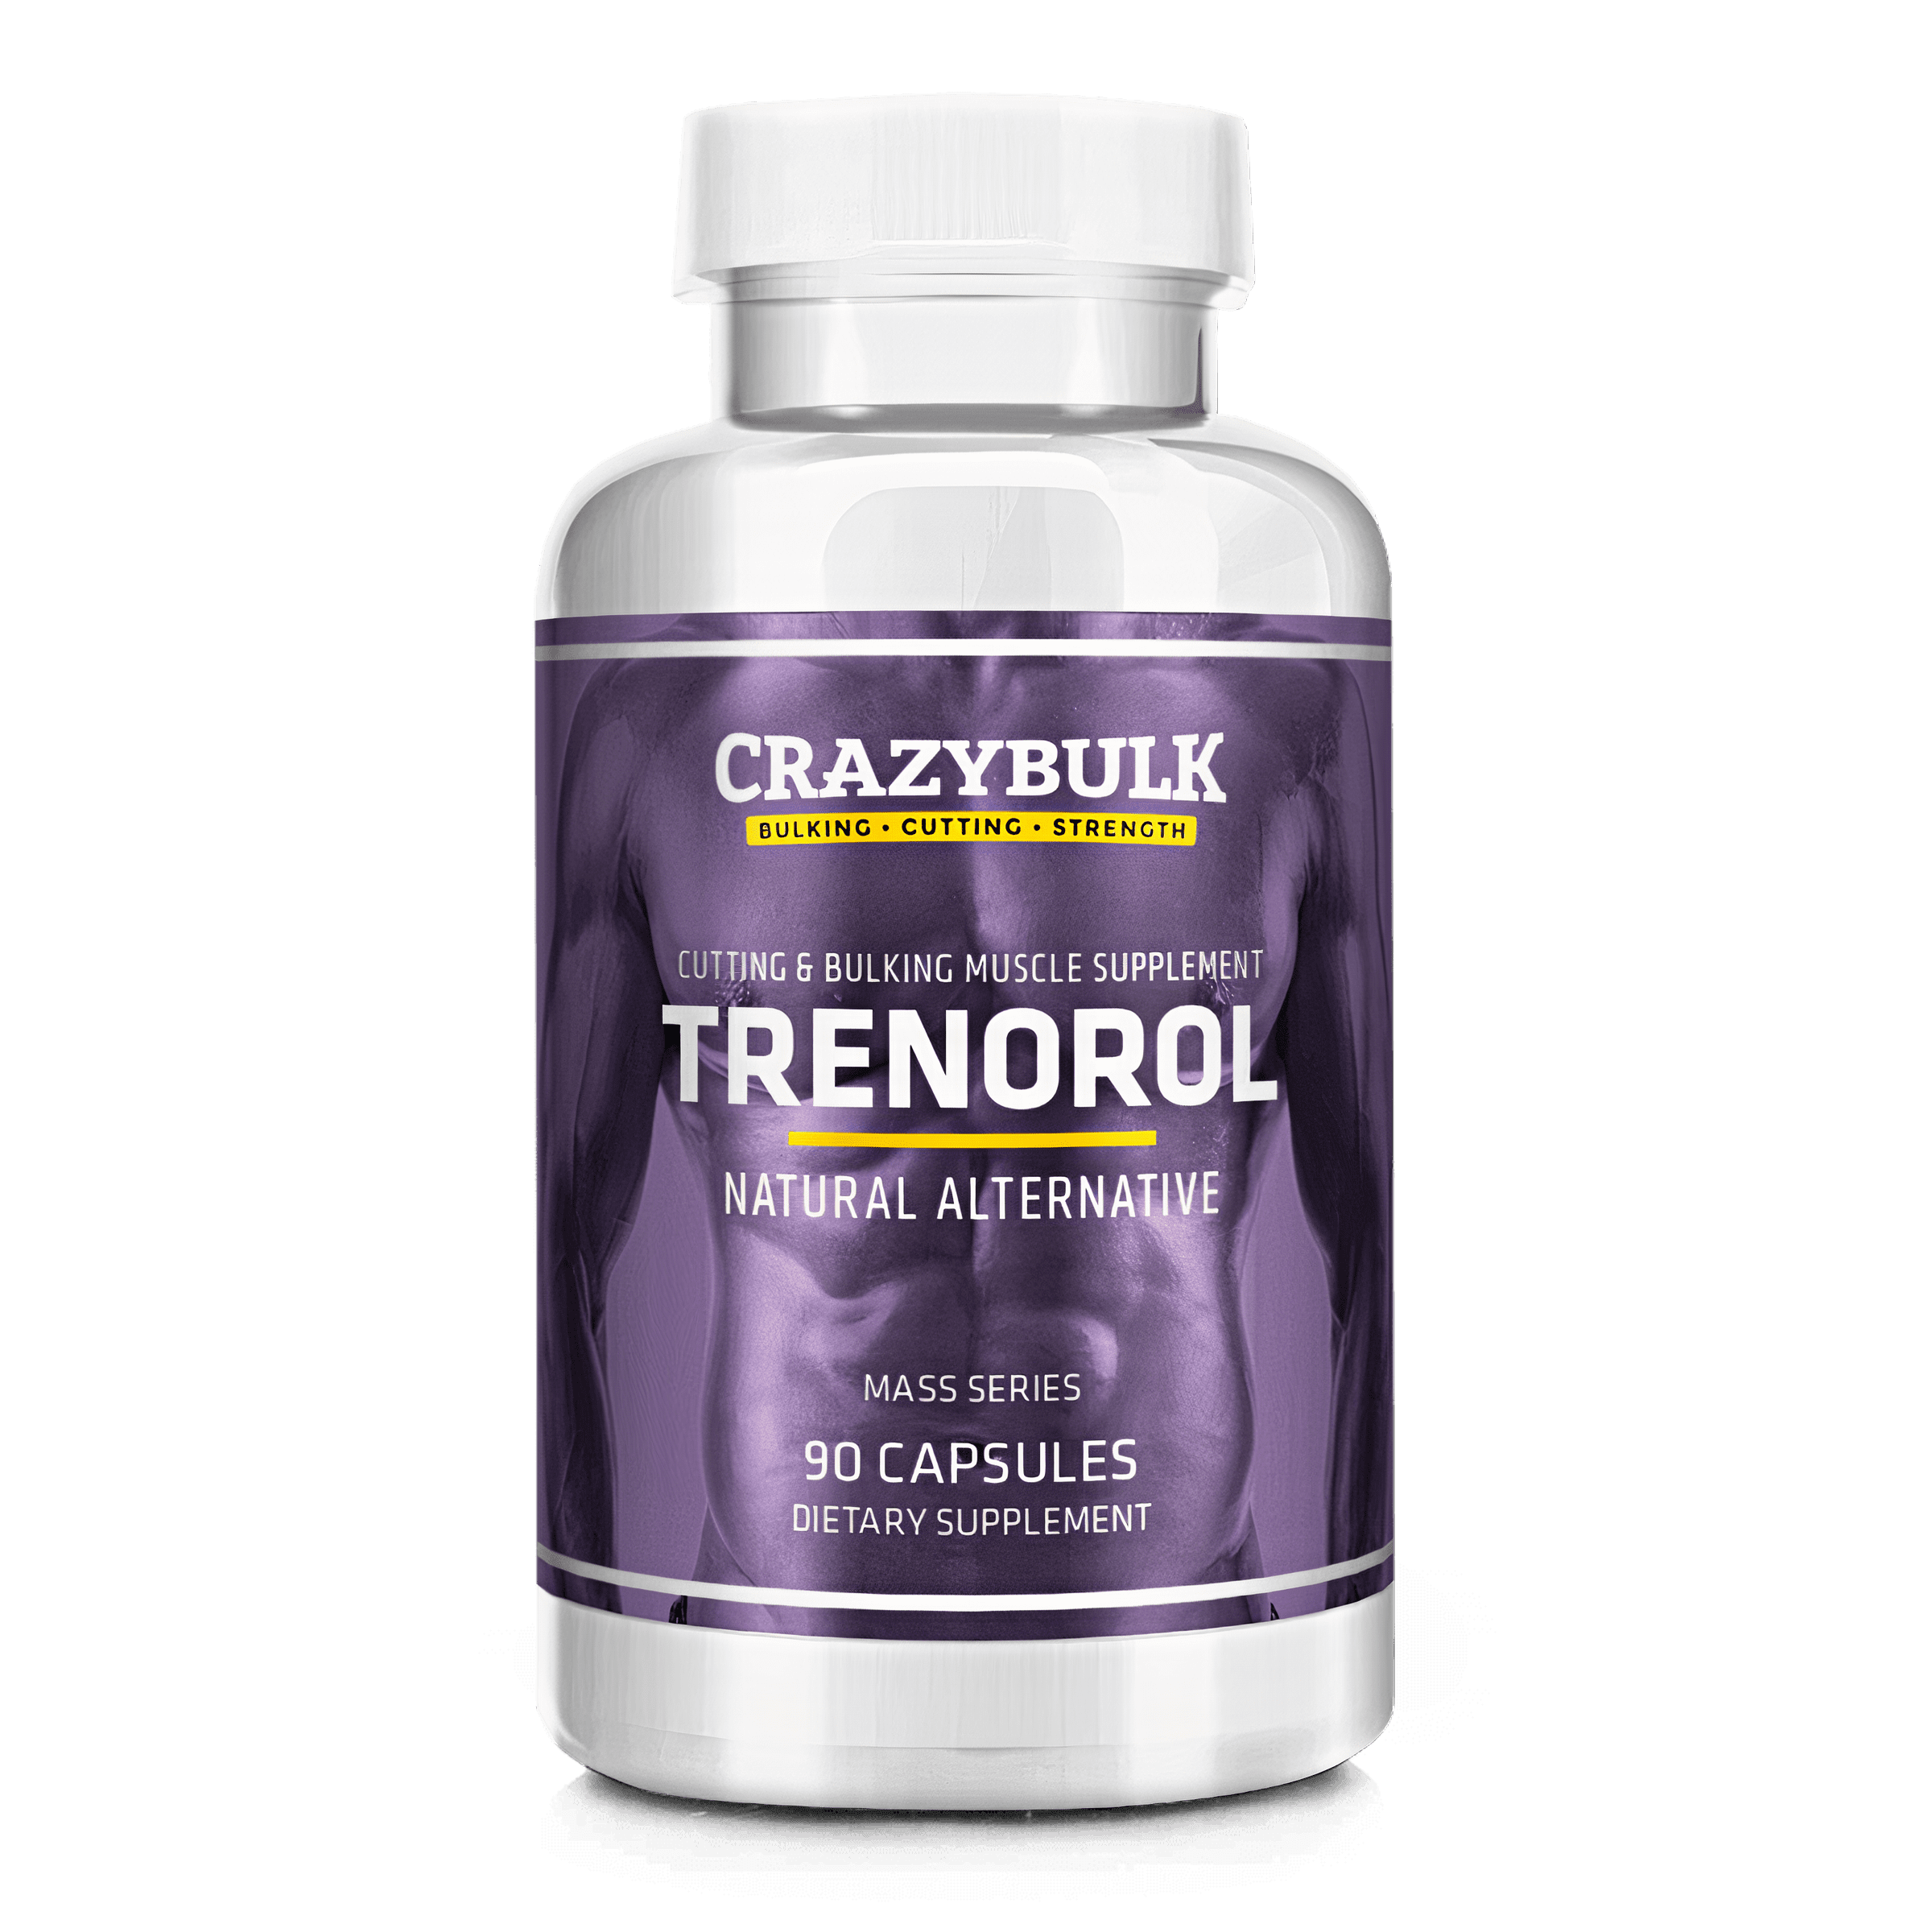 trenorol closest supplement to steroids